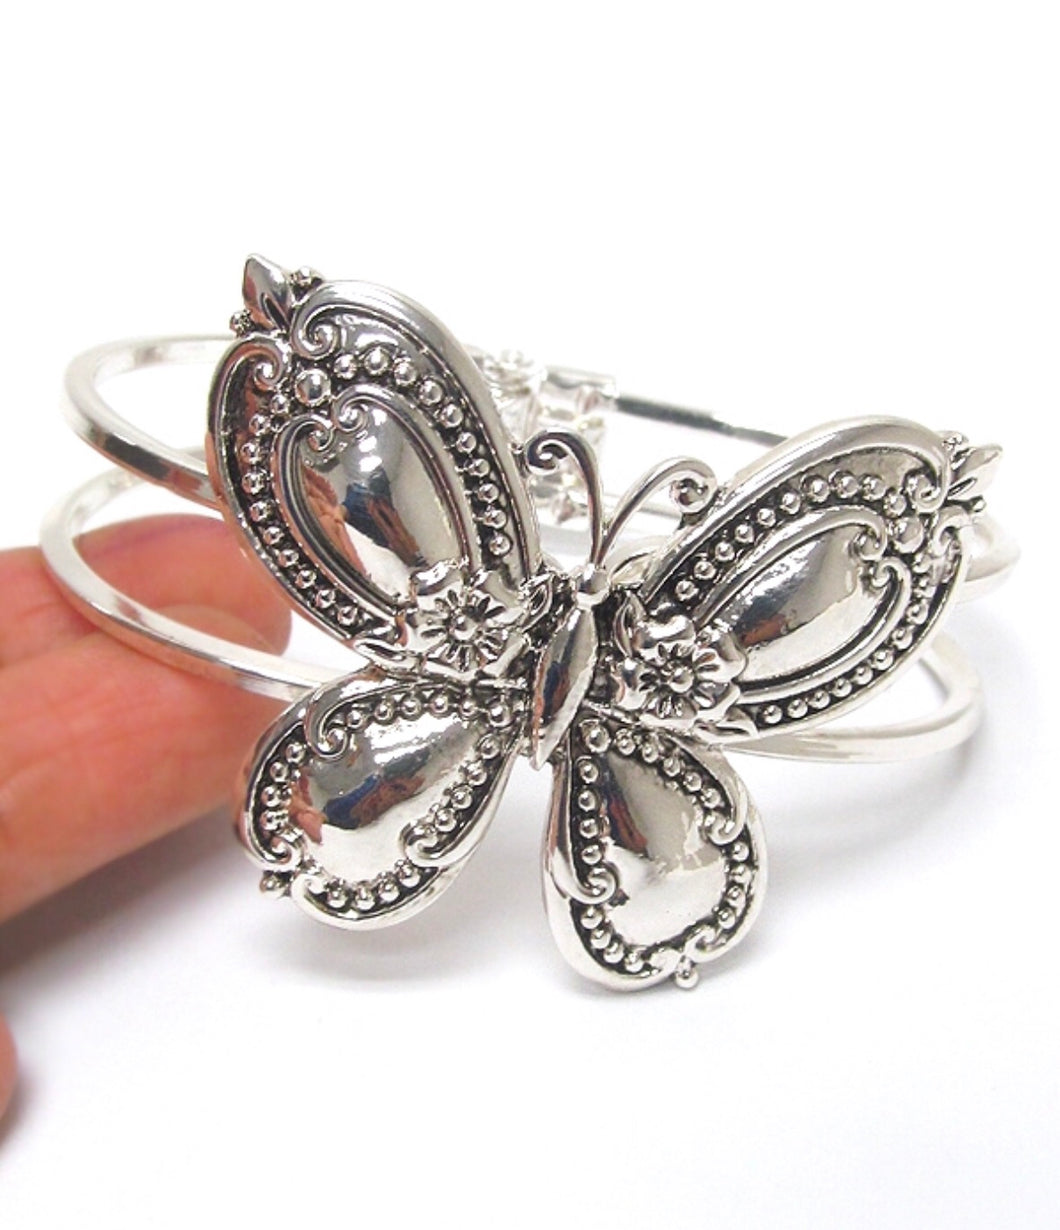 SPOON TEXTURED BANGLE - BUTTERFLY (1570)